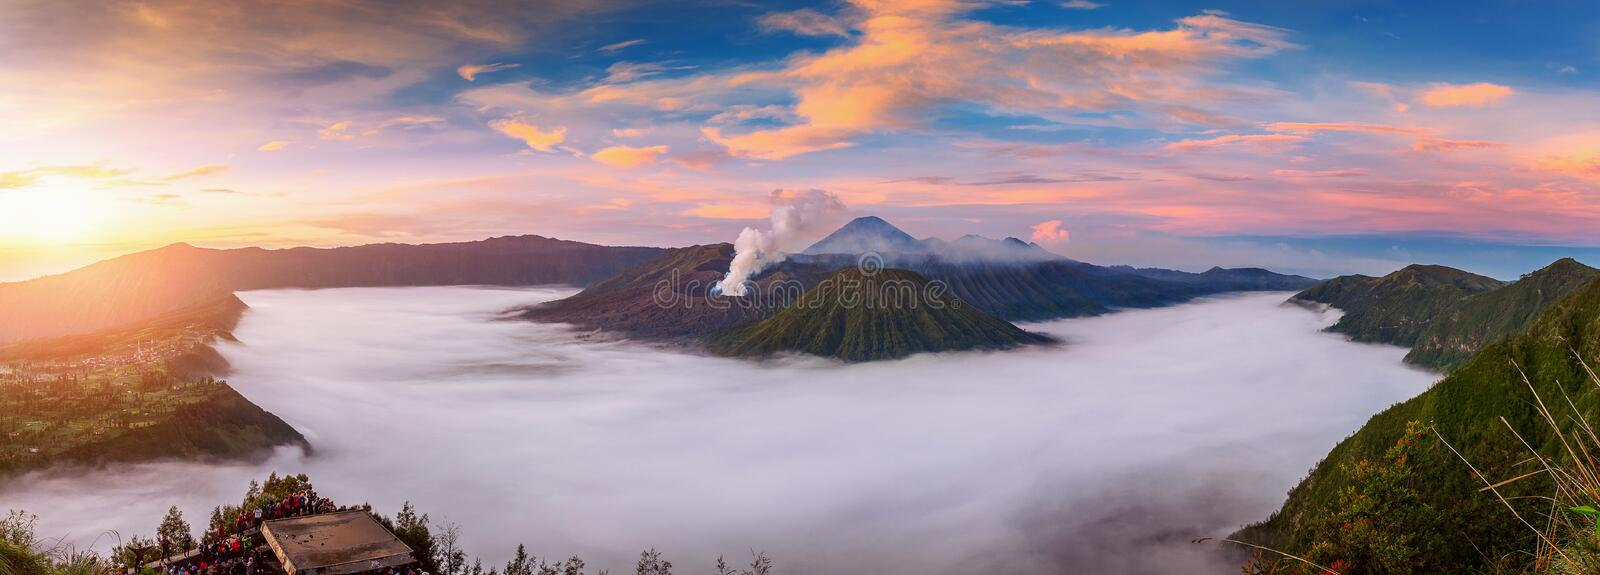 Ount Bromo volcano Gunung Bromo during sunrise from viewpoint on Mount Penanjakan in Bromo Tengger Semeru National Park stock photography